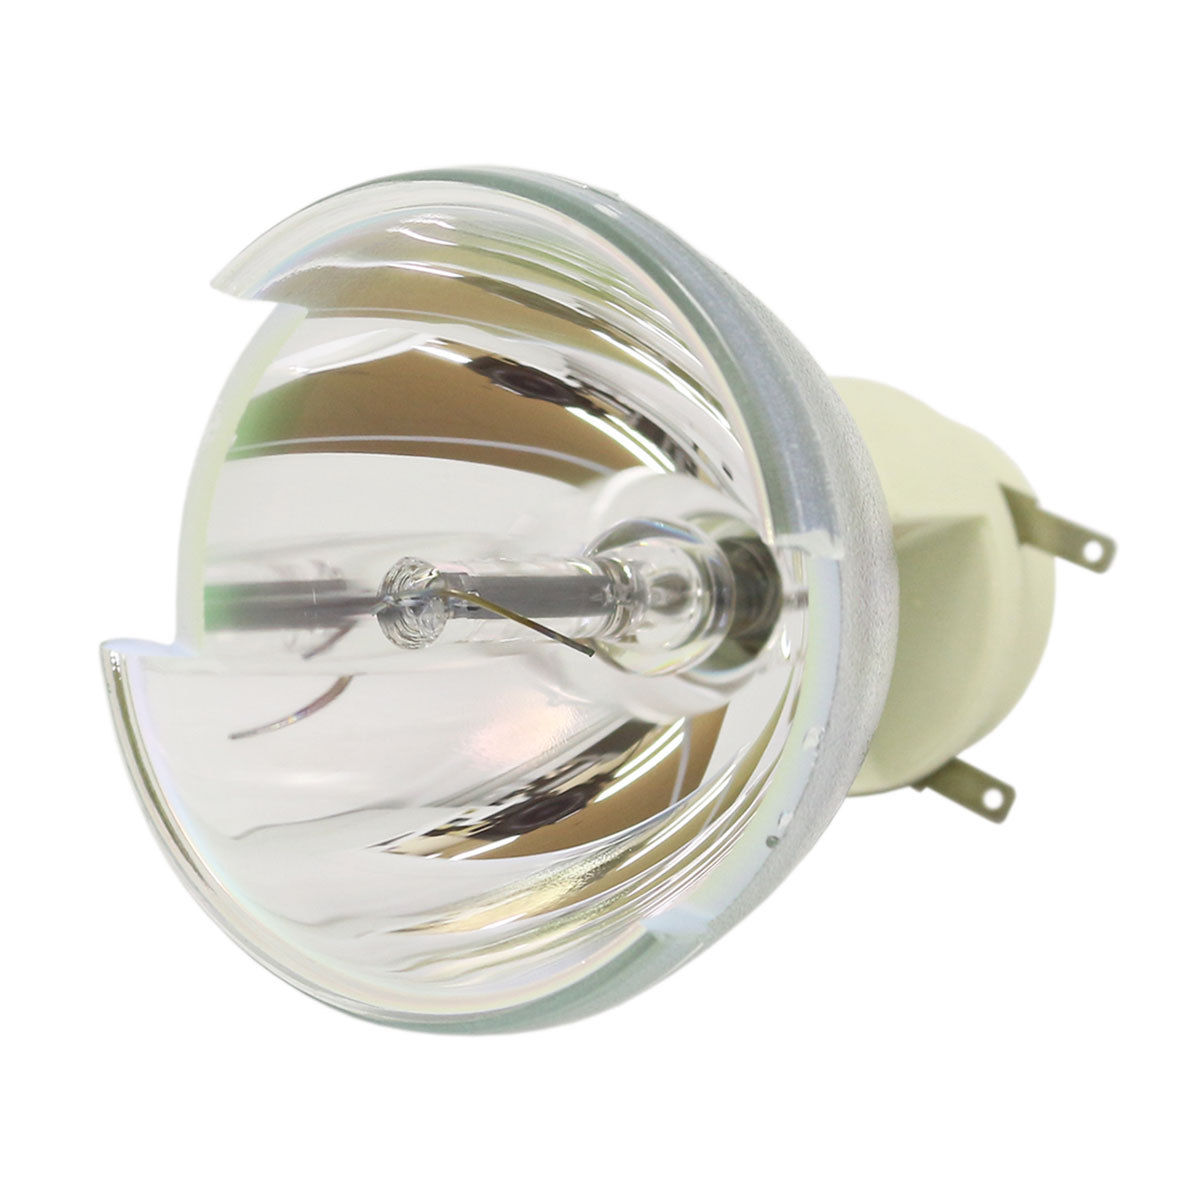 BL-FP330B DE.5811116283-SOT For Optoma EW775 EX785 OP5050 TW6000 TW775 TW7755 TX7000 TX785 Projector Lamp Bulb Without Housing